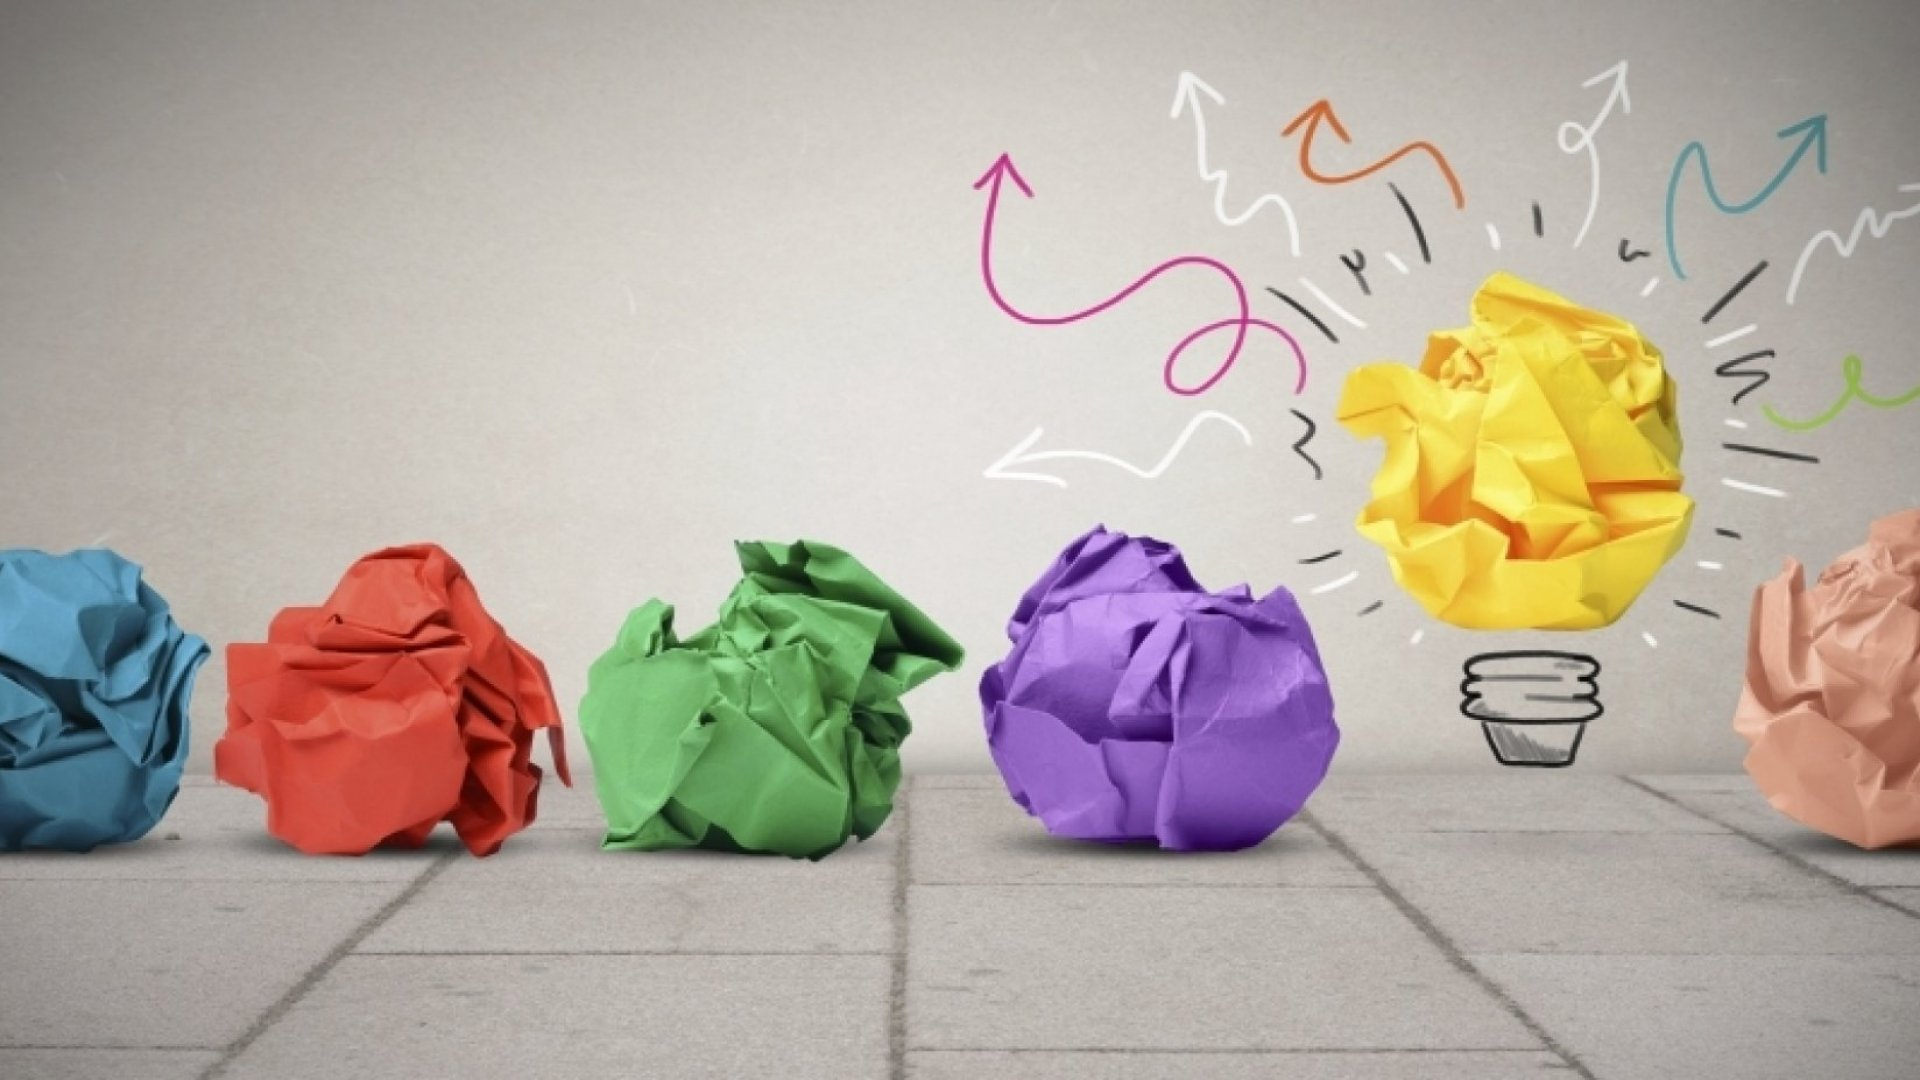 More Ideas in Minutes: 5 Instant Creativity Boosters